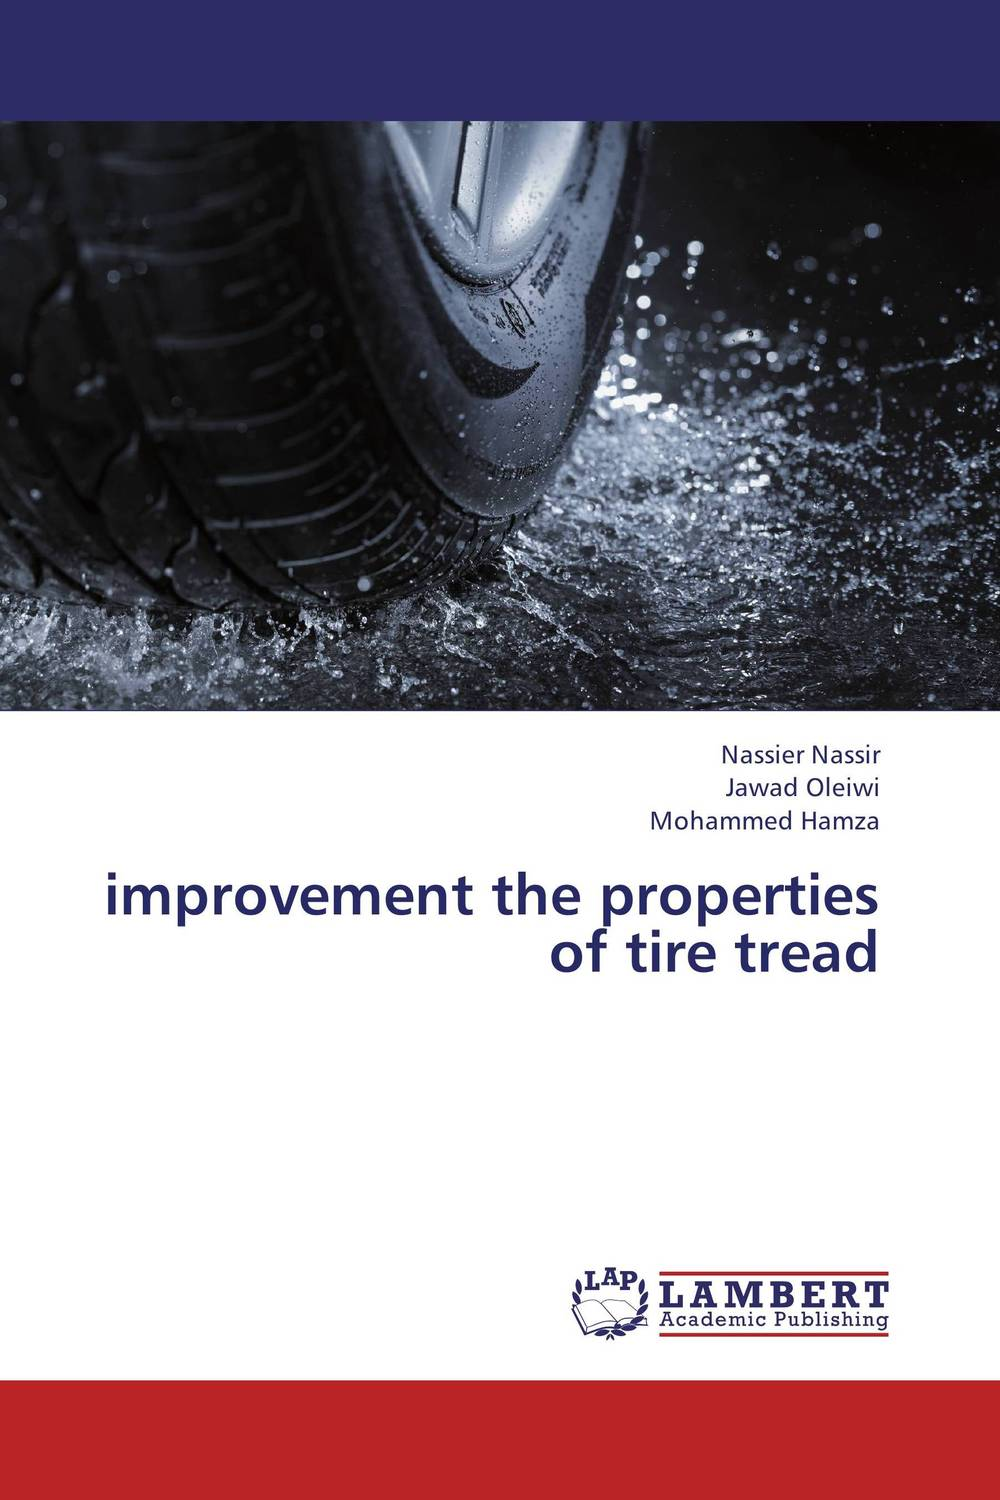 improvement the properties of tire tread